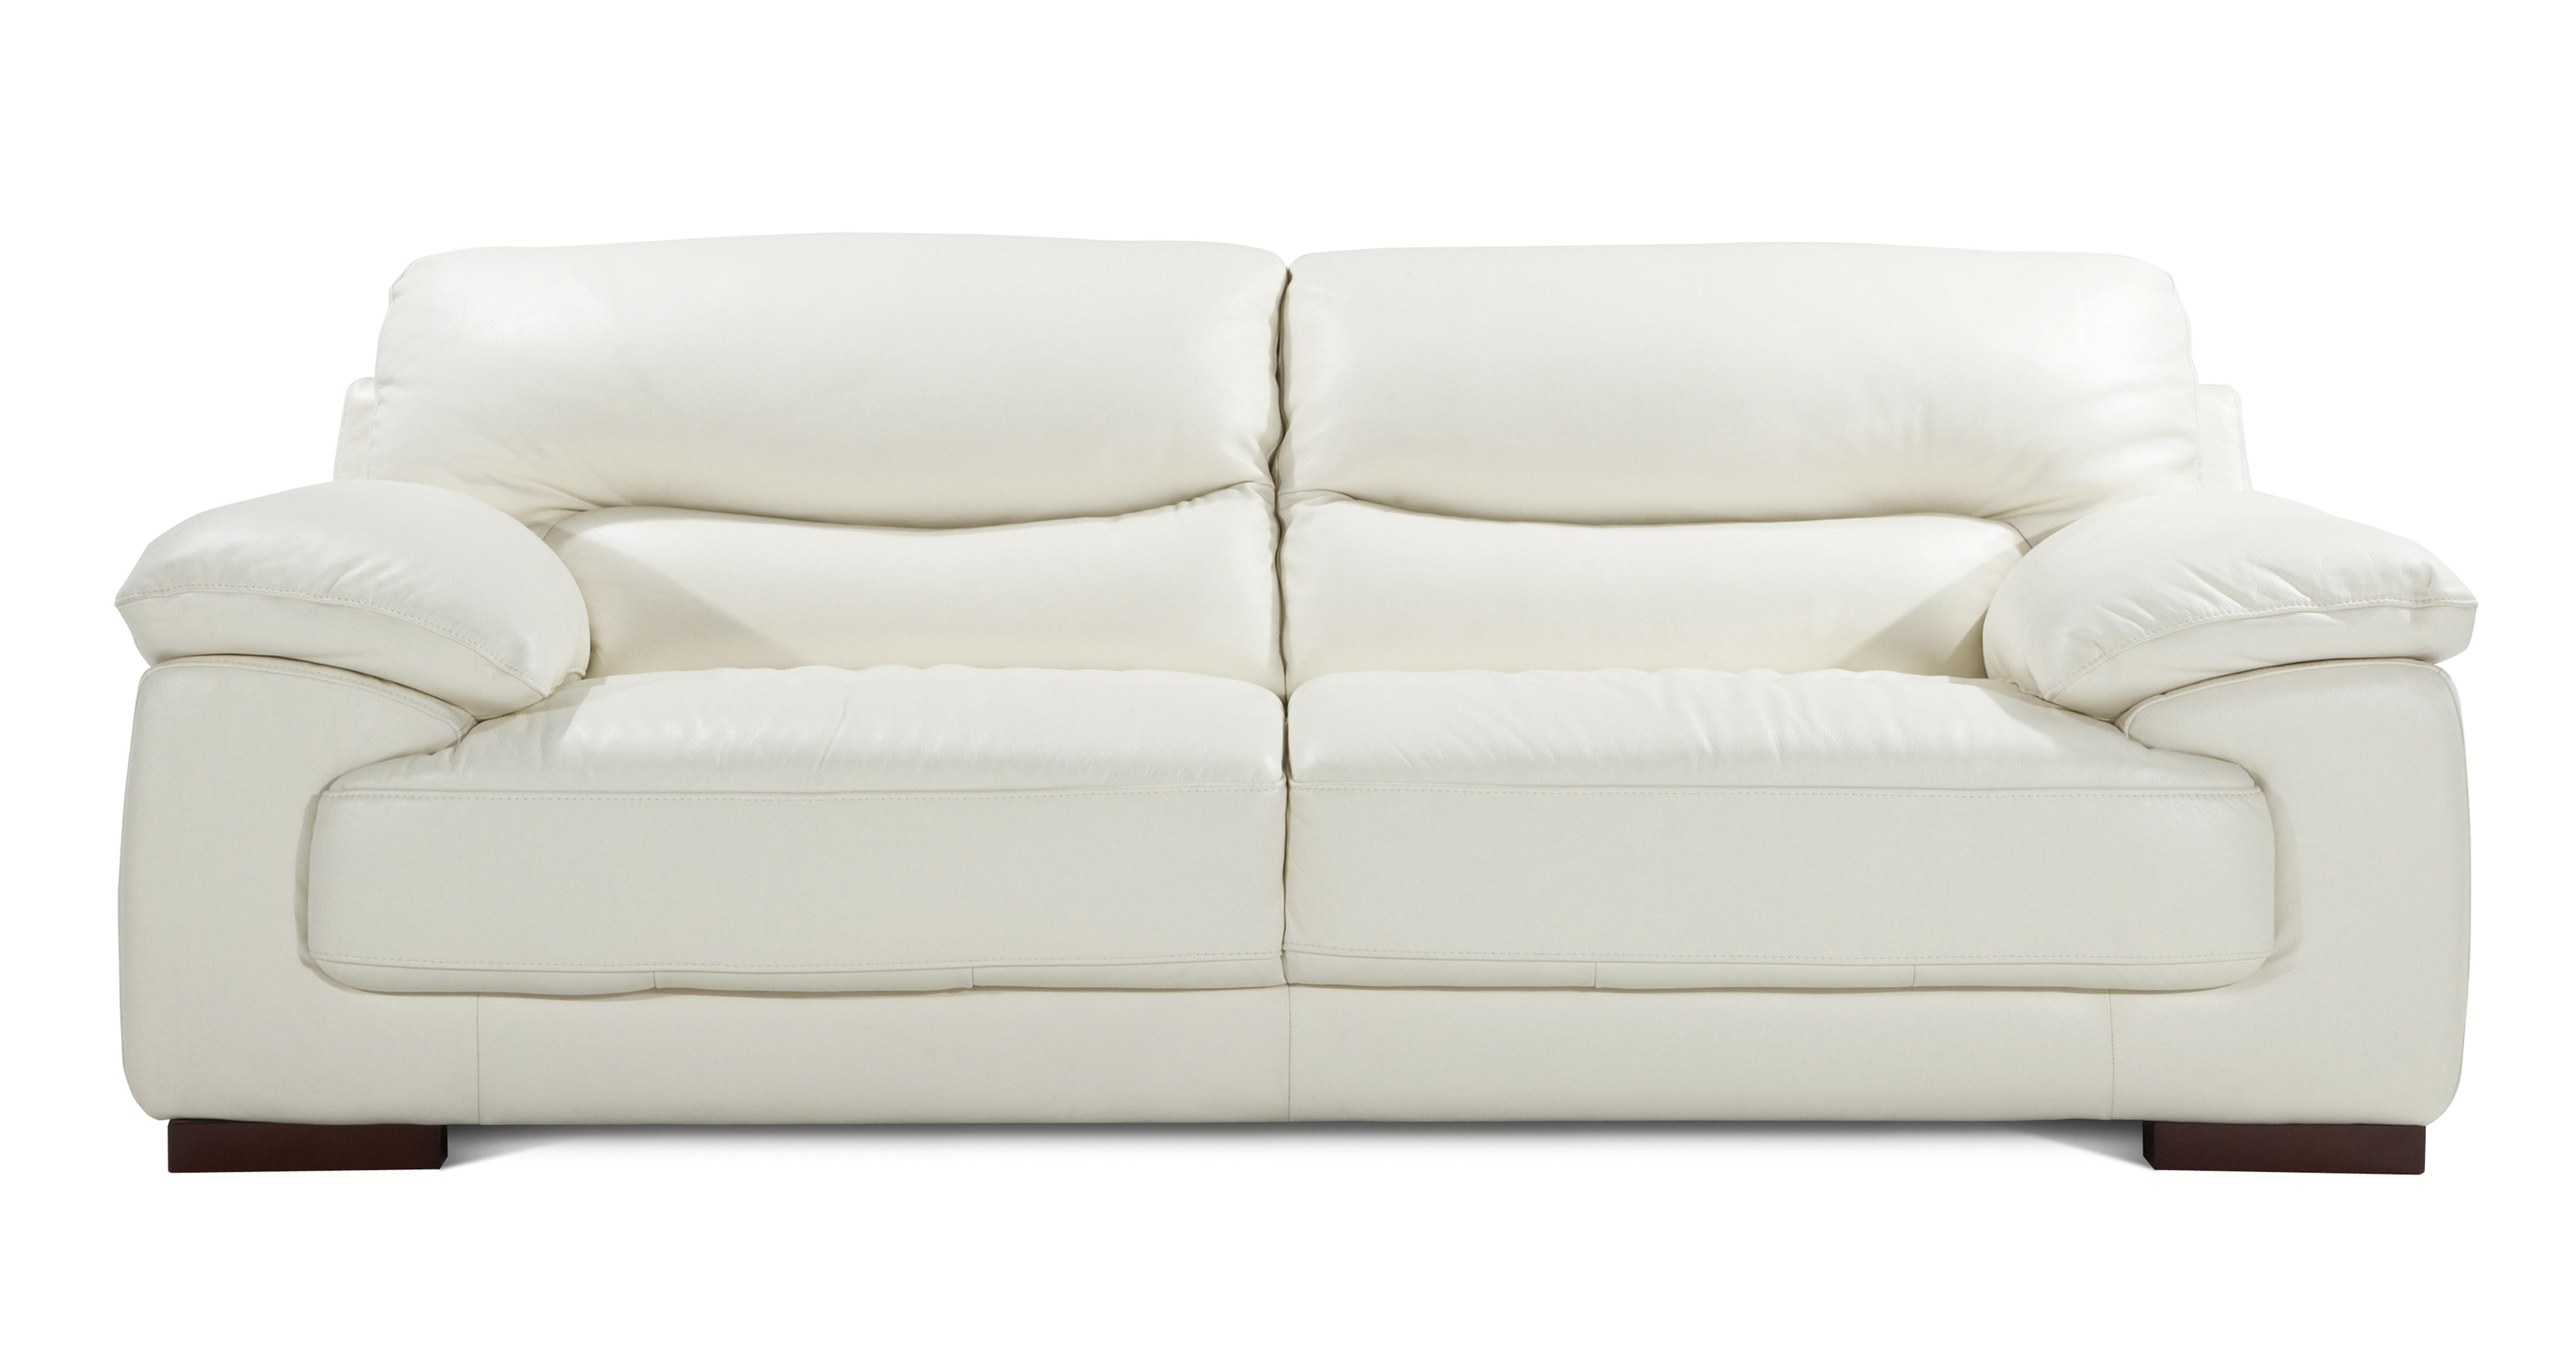 Dazzle 3 Seater Sofa Nevada Dfs Ireland ~ Pure Leather Sofa Price